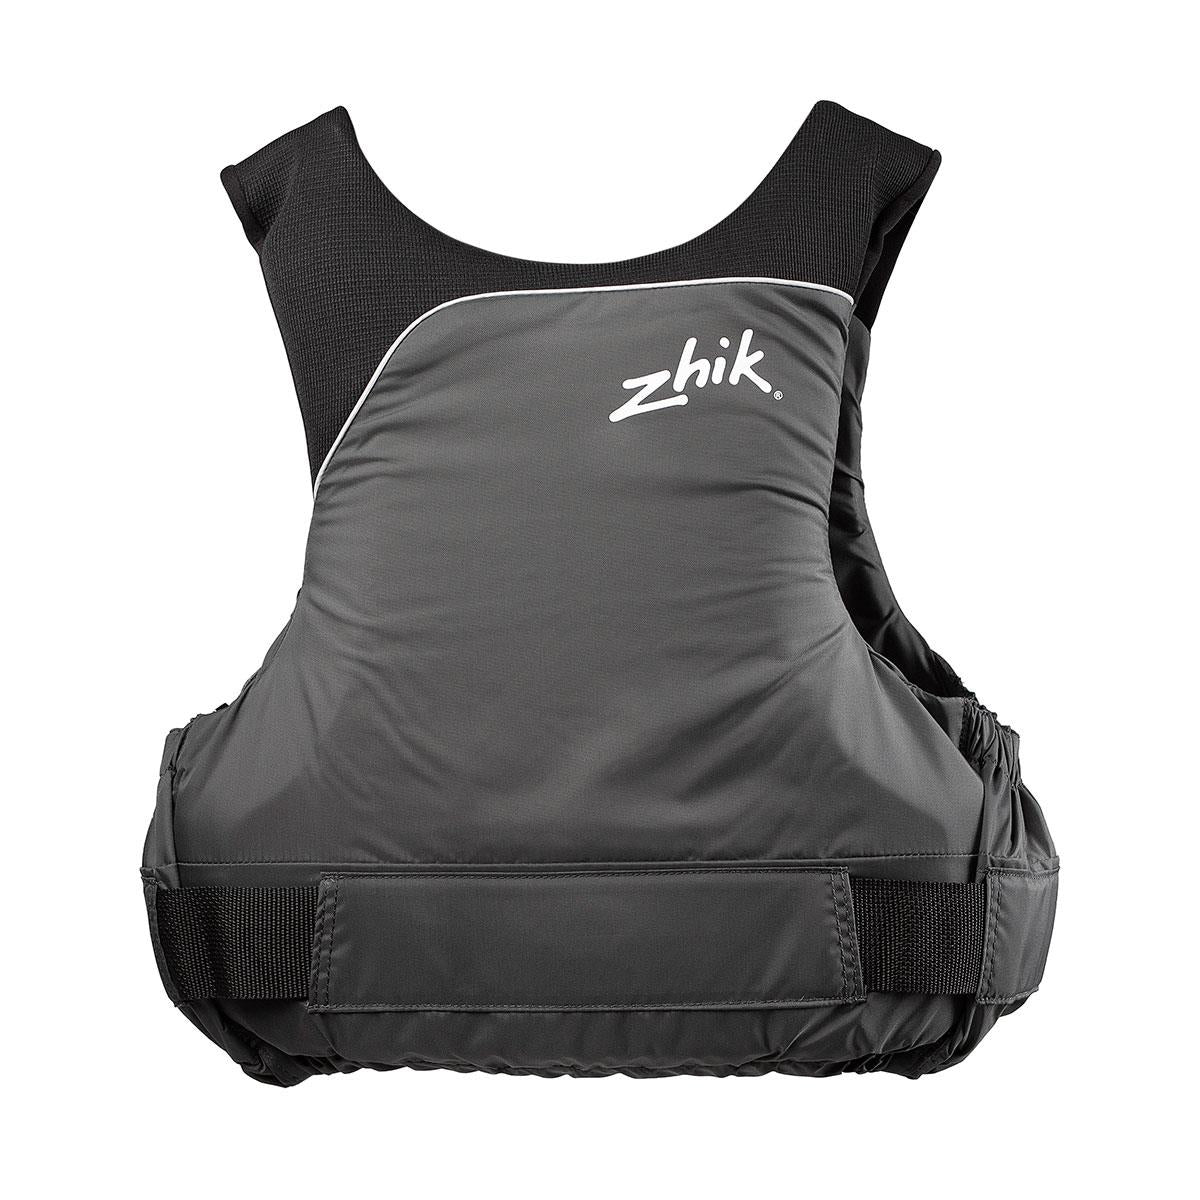 Zhik P3 PFD Buoyancy Aid - Grey